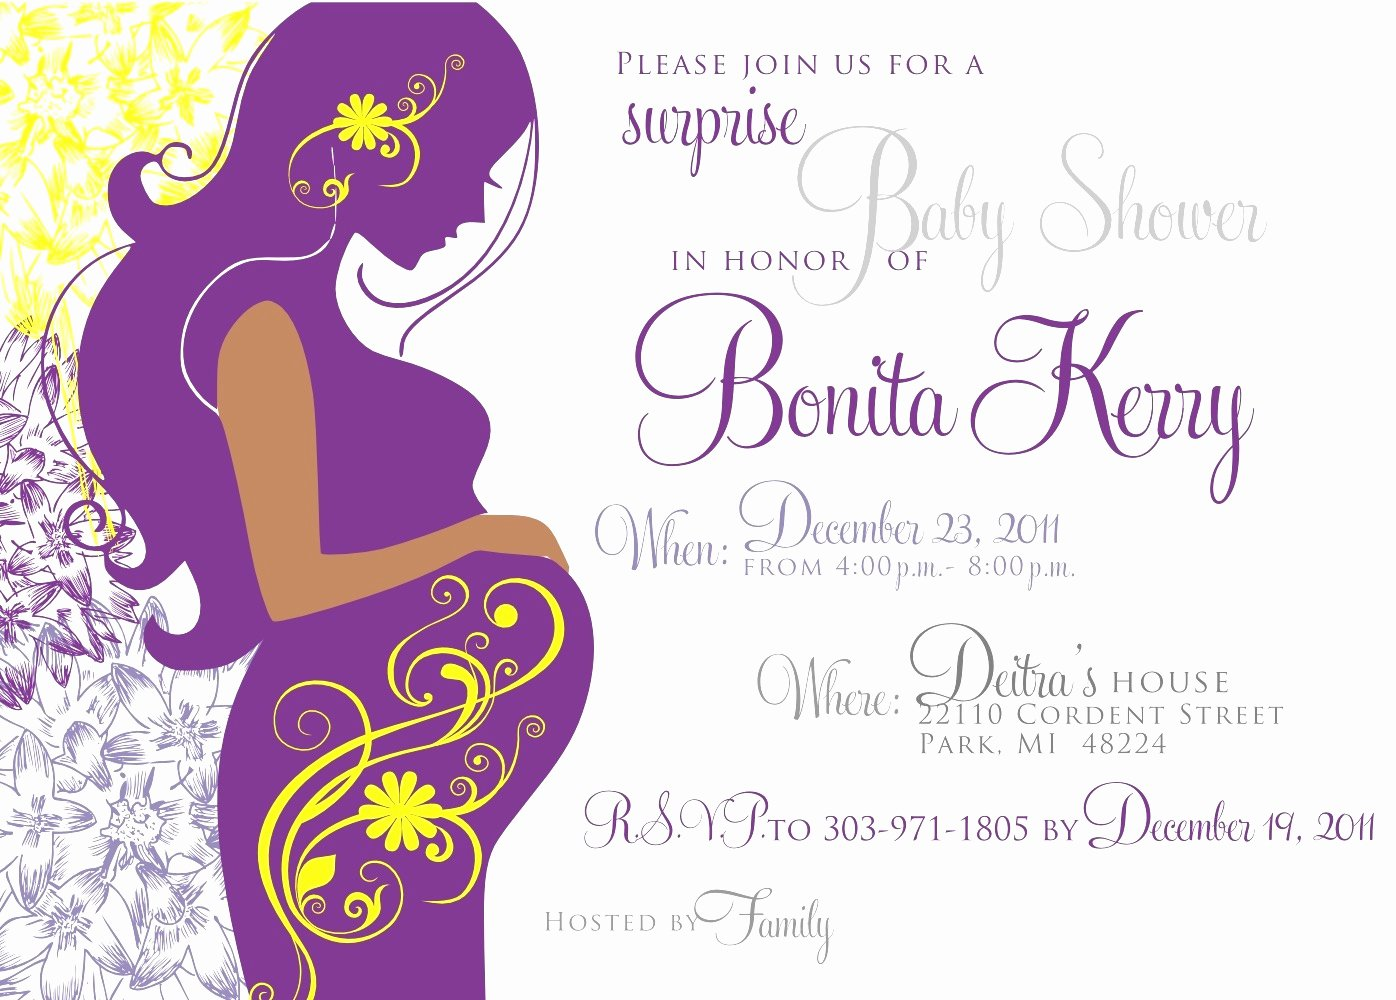 Baby Shower Template Word Beautiful Free Baby Shower Invitation Templates for Word Www